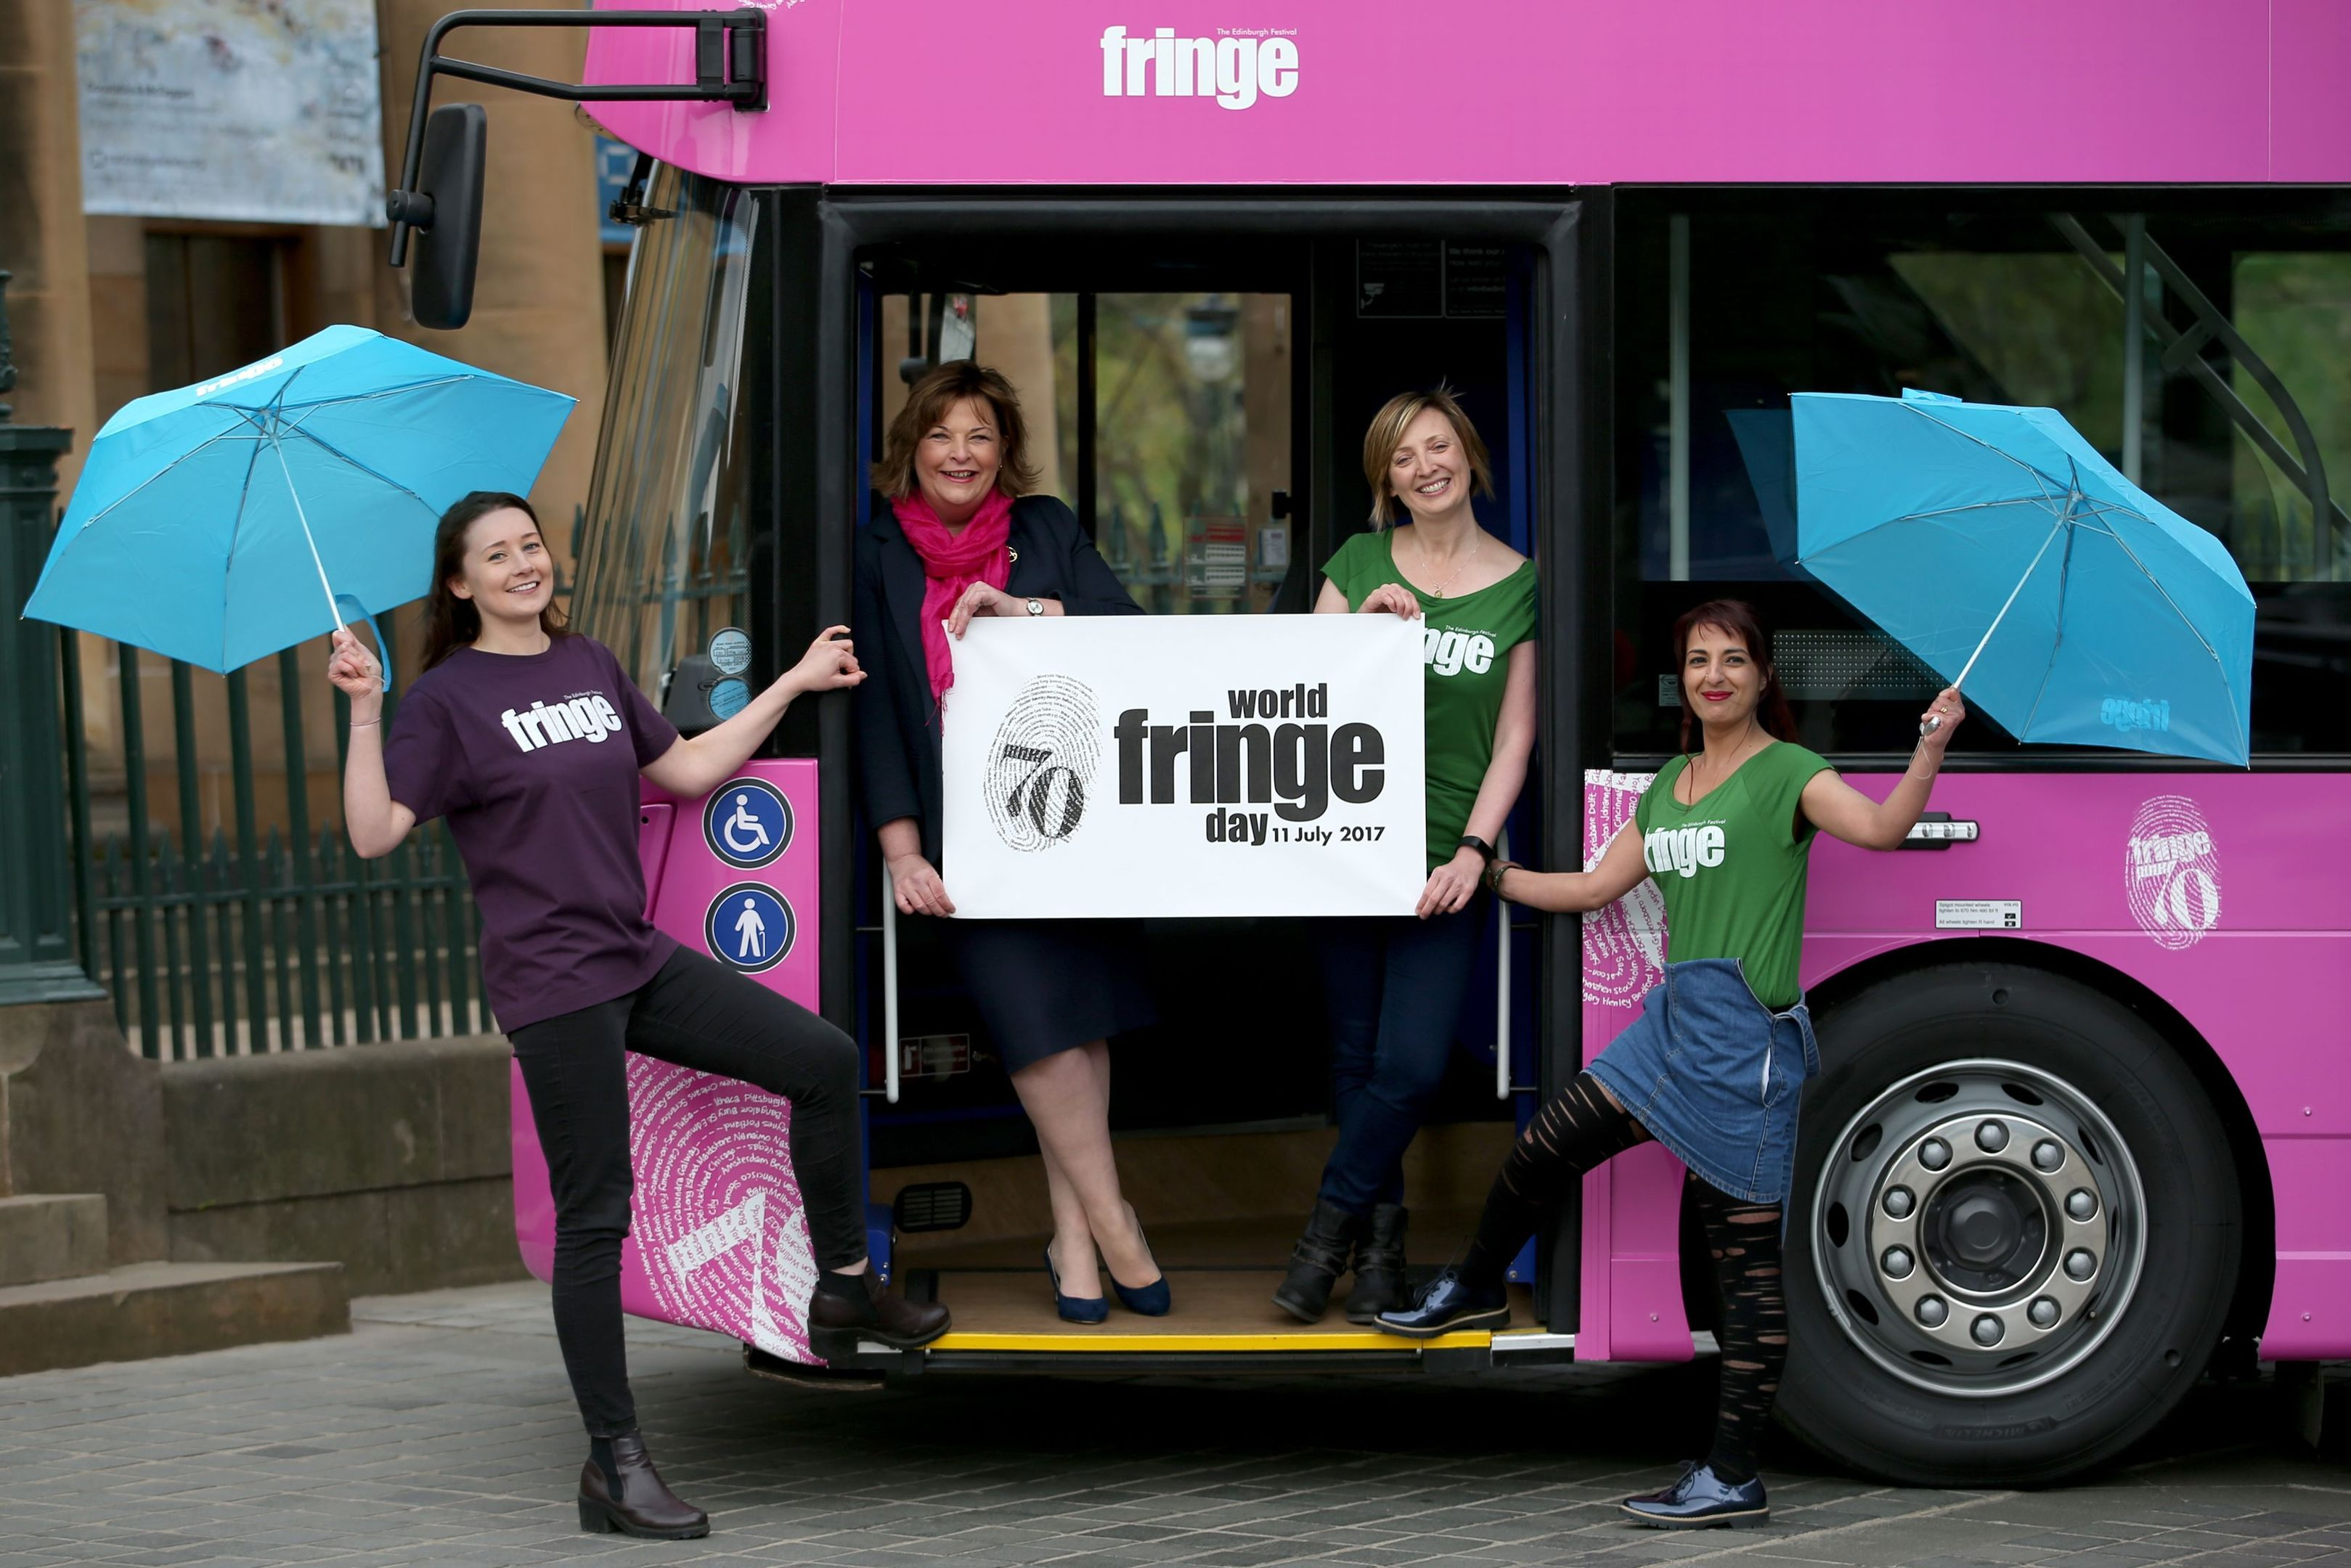 Rachael Cowie (left), Elizabeth Burchill (second right) and Navida Galbraith (right) from the Edinburgh Festival Fringe Society with Cabinet Secretary for Culture, Tourism and External Affairs Fiona Hyslop (second left), help launch the inaugural World Fringe Day in Edinburgh. 7. (Jane Barlow/PA Wire)